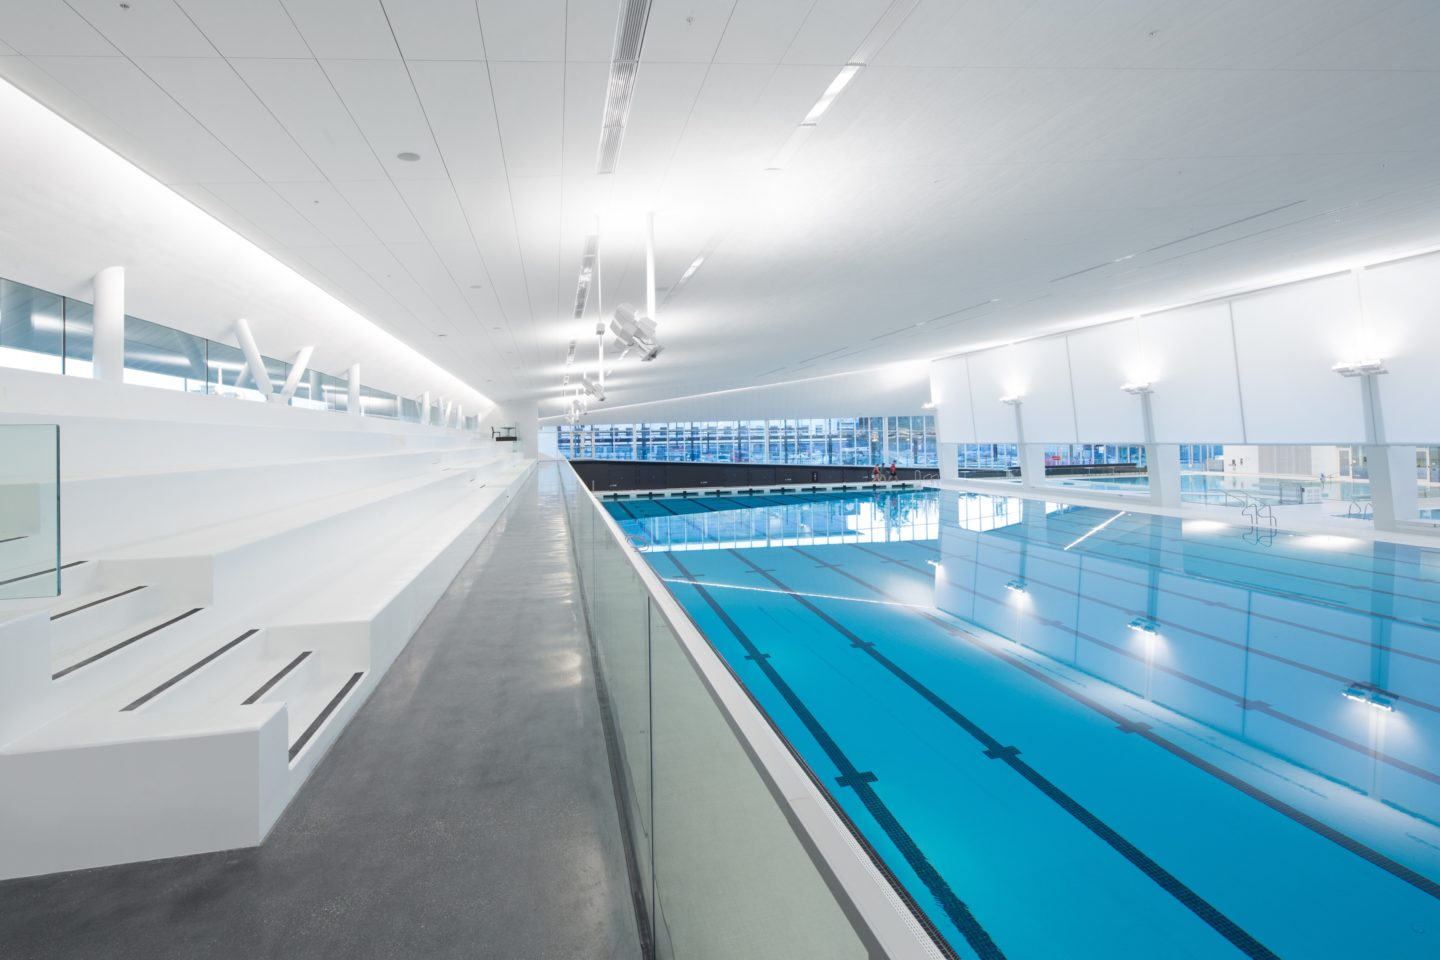 Ubc aquatic centre architectural design project vancouver - Best indoor swimming pools in london ...